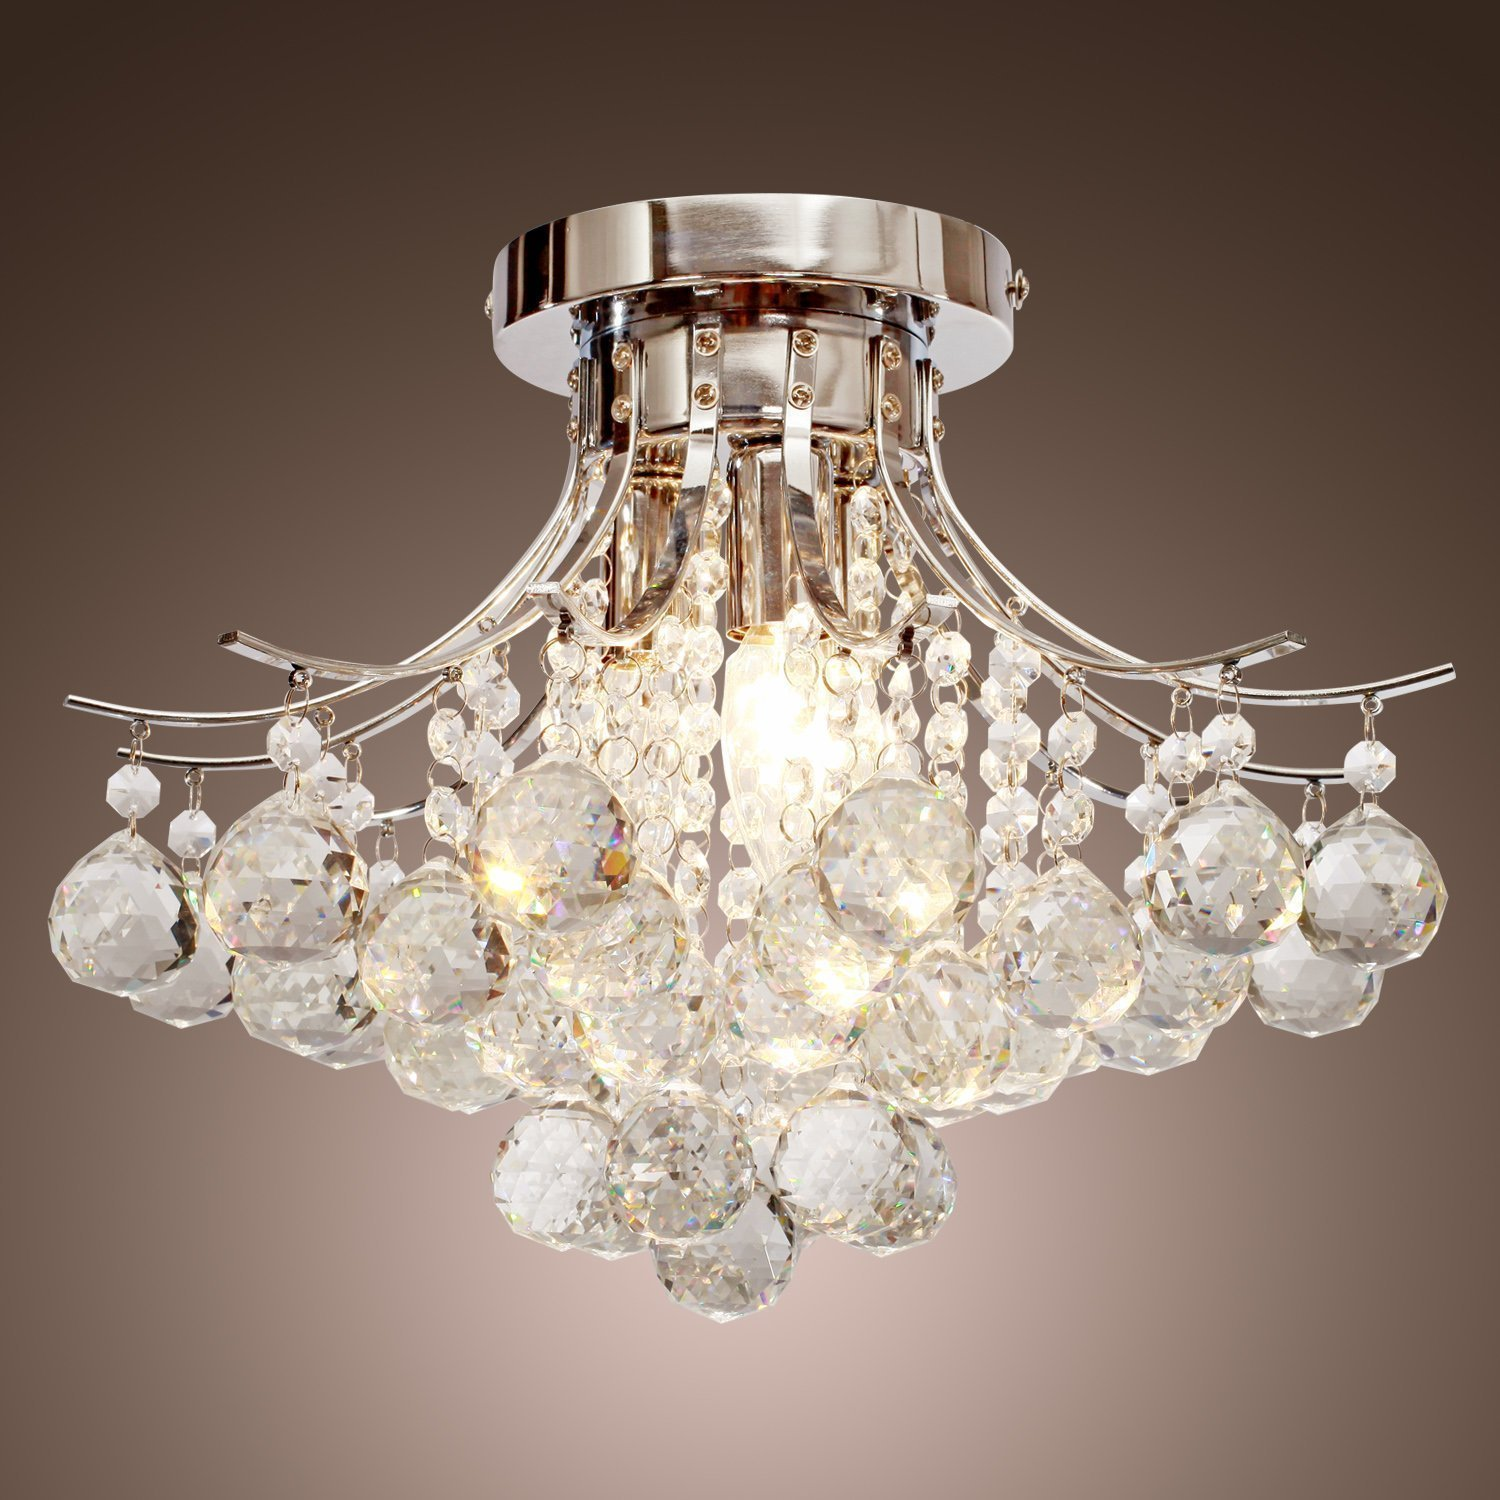 Loco chrome finish crystal chandelier with 3 lights mini style loco chrome finish crystal chandelier with 3 lights mini style flush mount ceiling light fixture for study roomoffice dining room bedroom arubaitofo Image collections